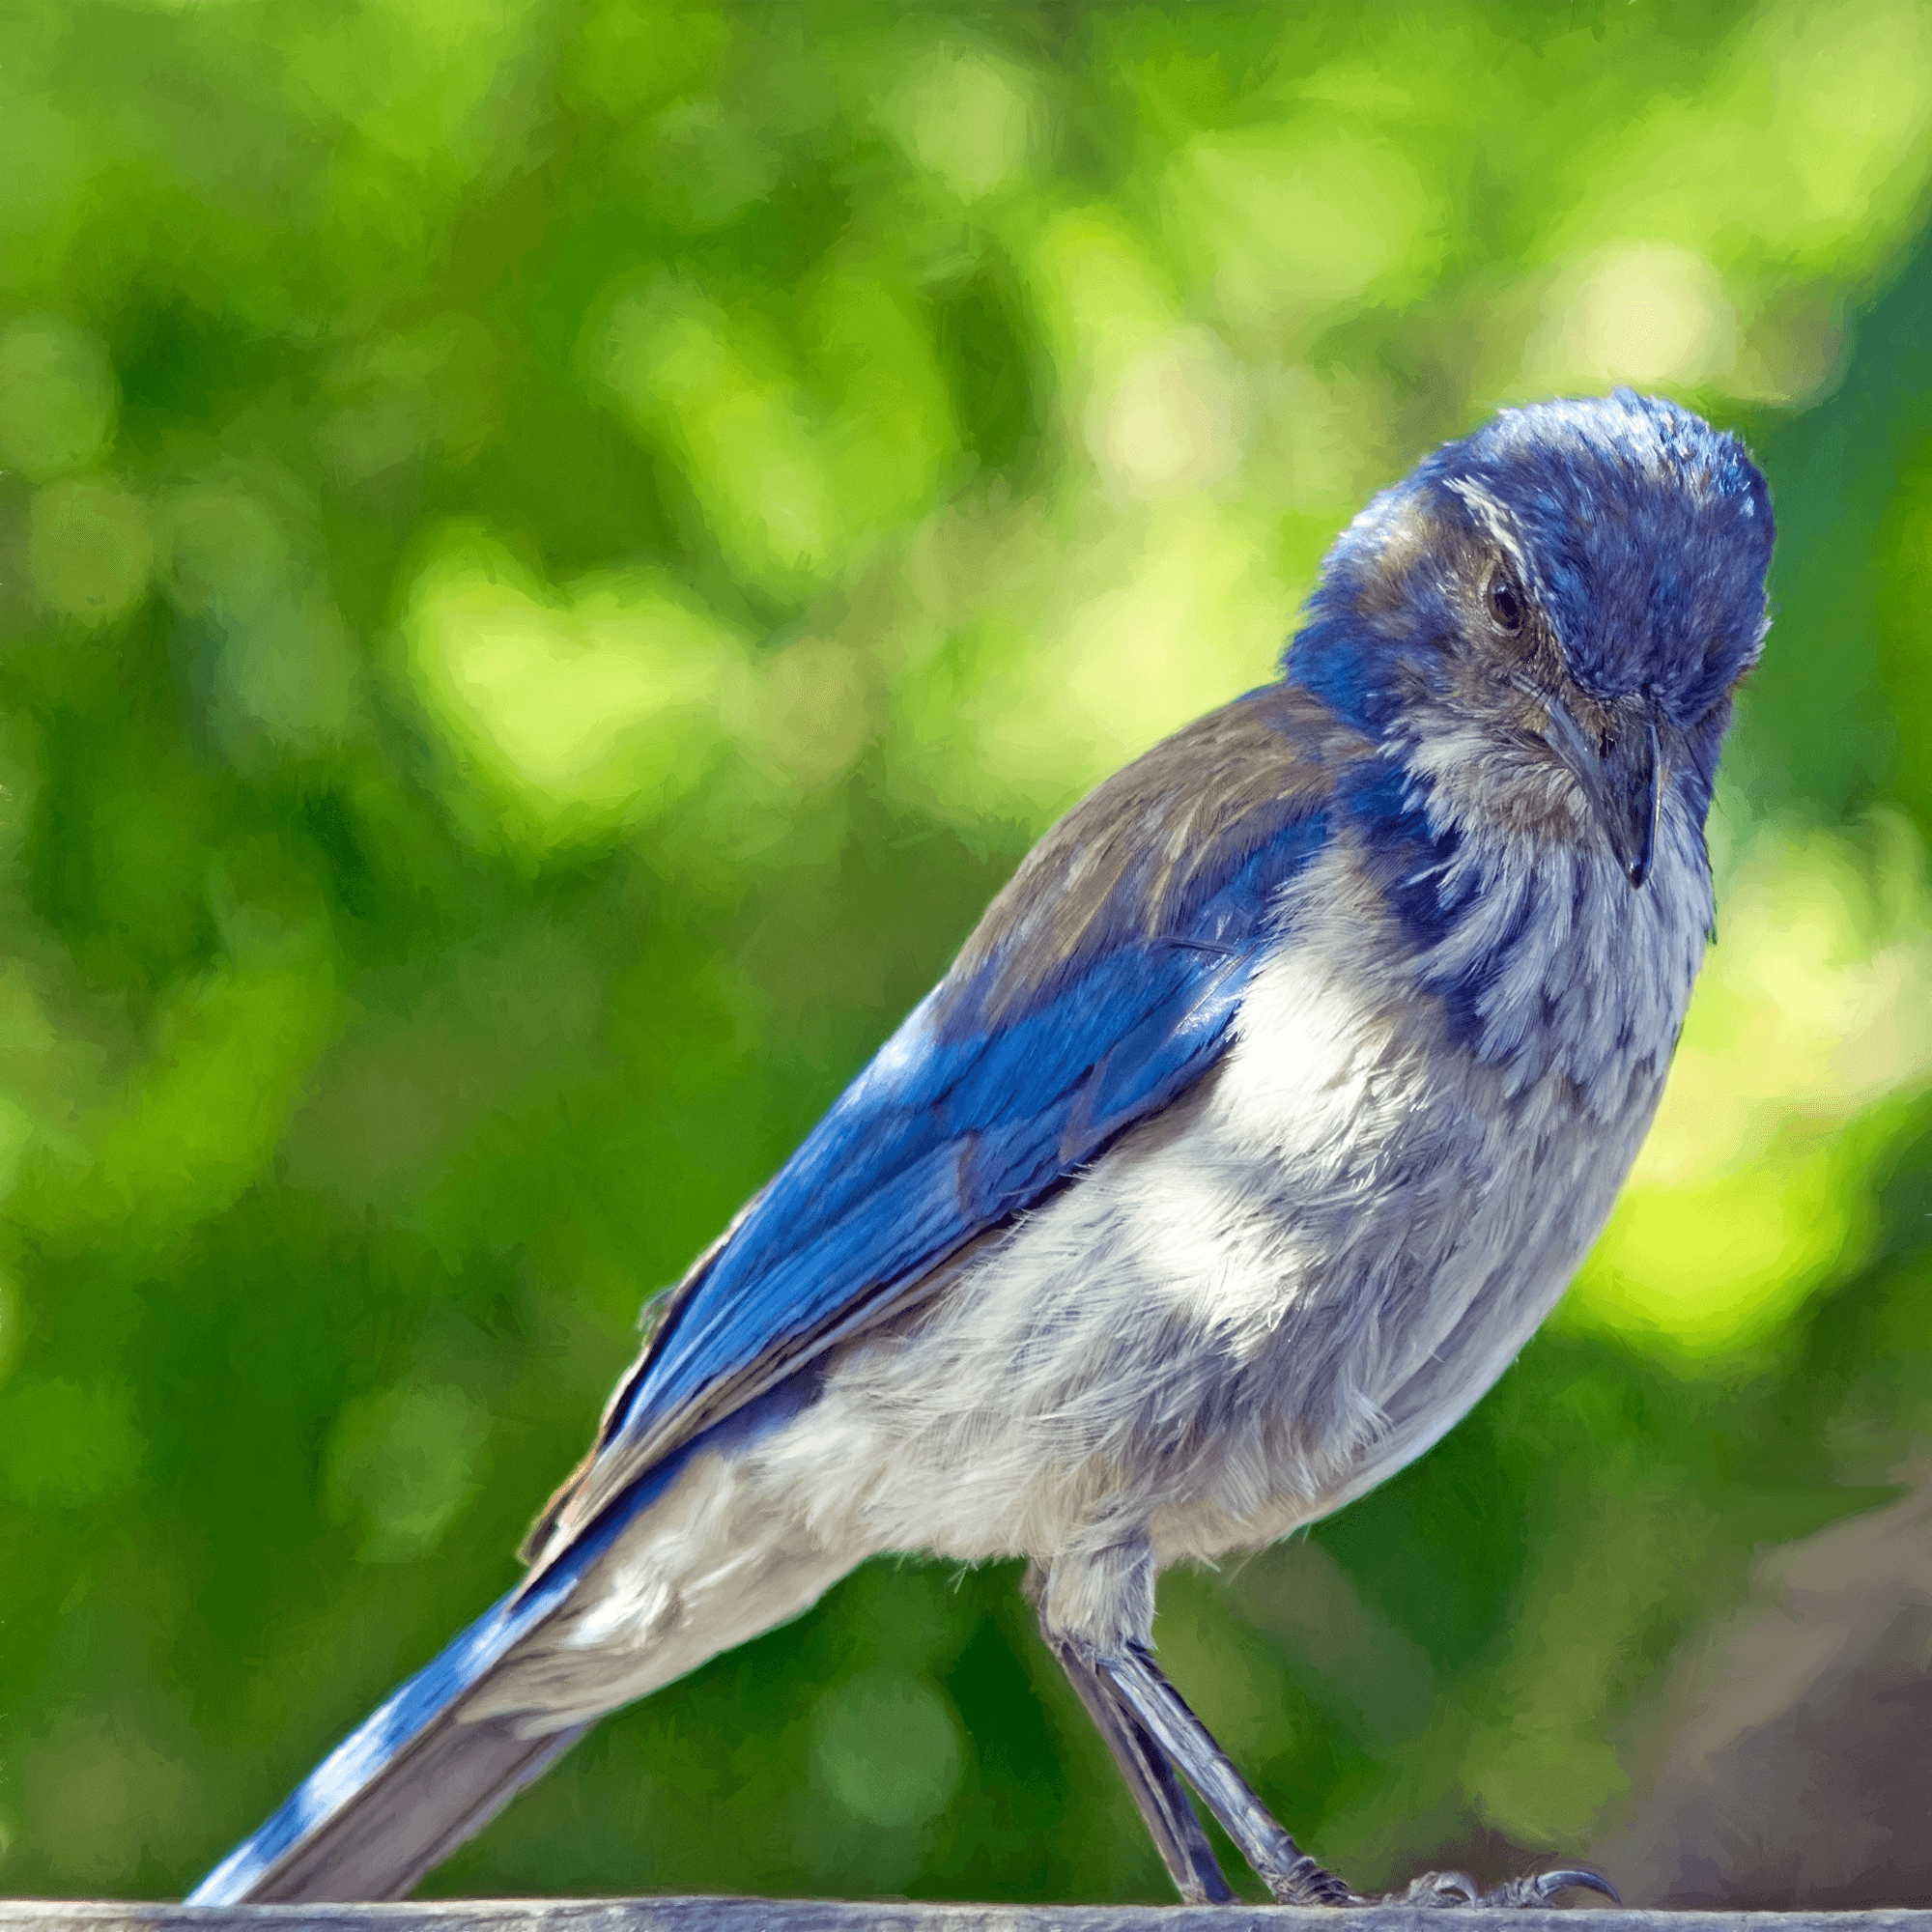 blue and gray bird